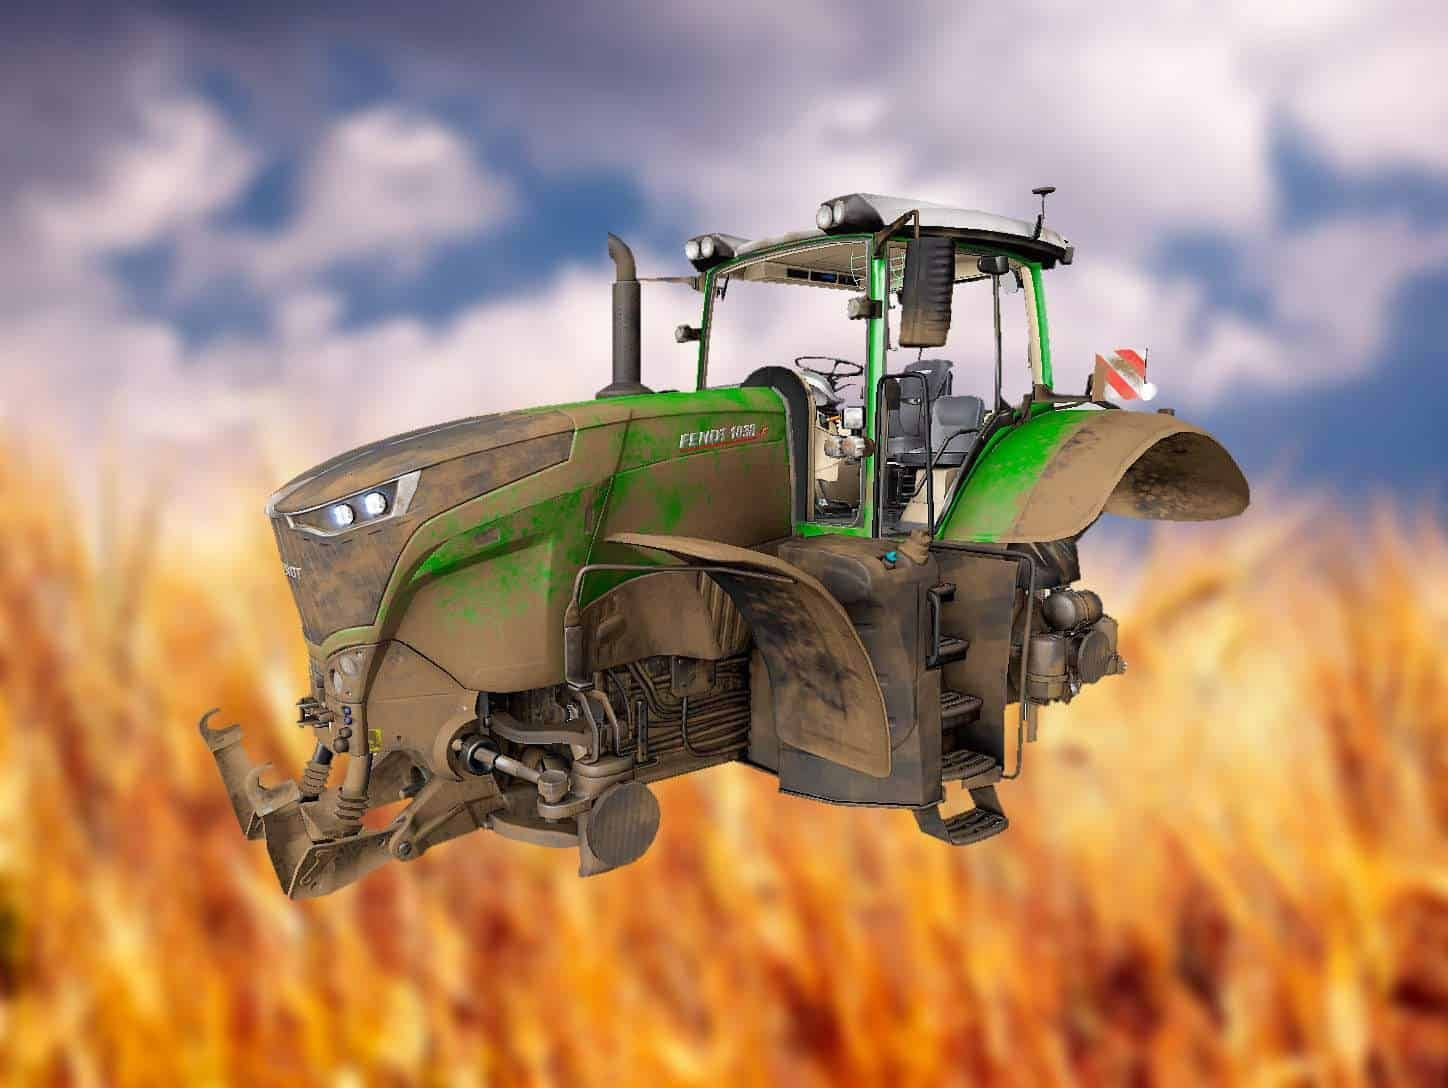 Farming Simulator 21 Modding What's New or Changed? Mods